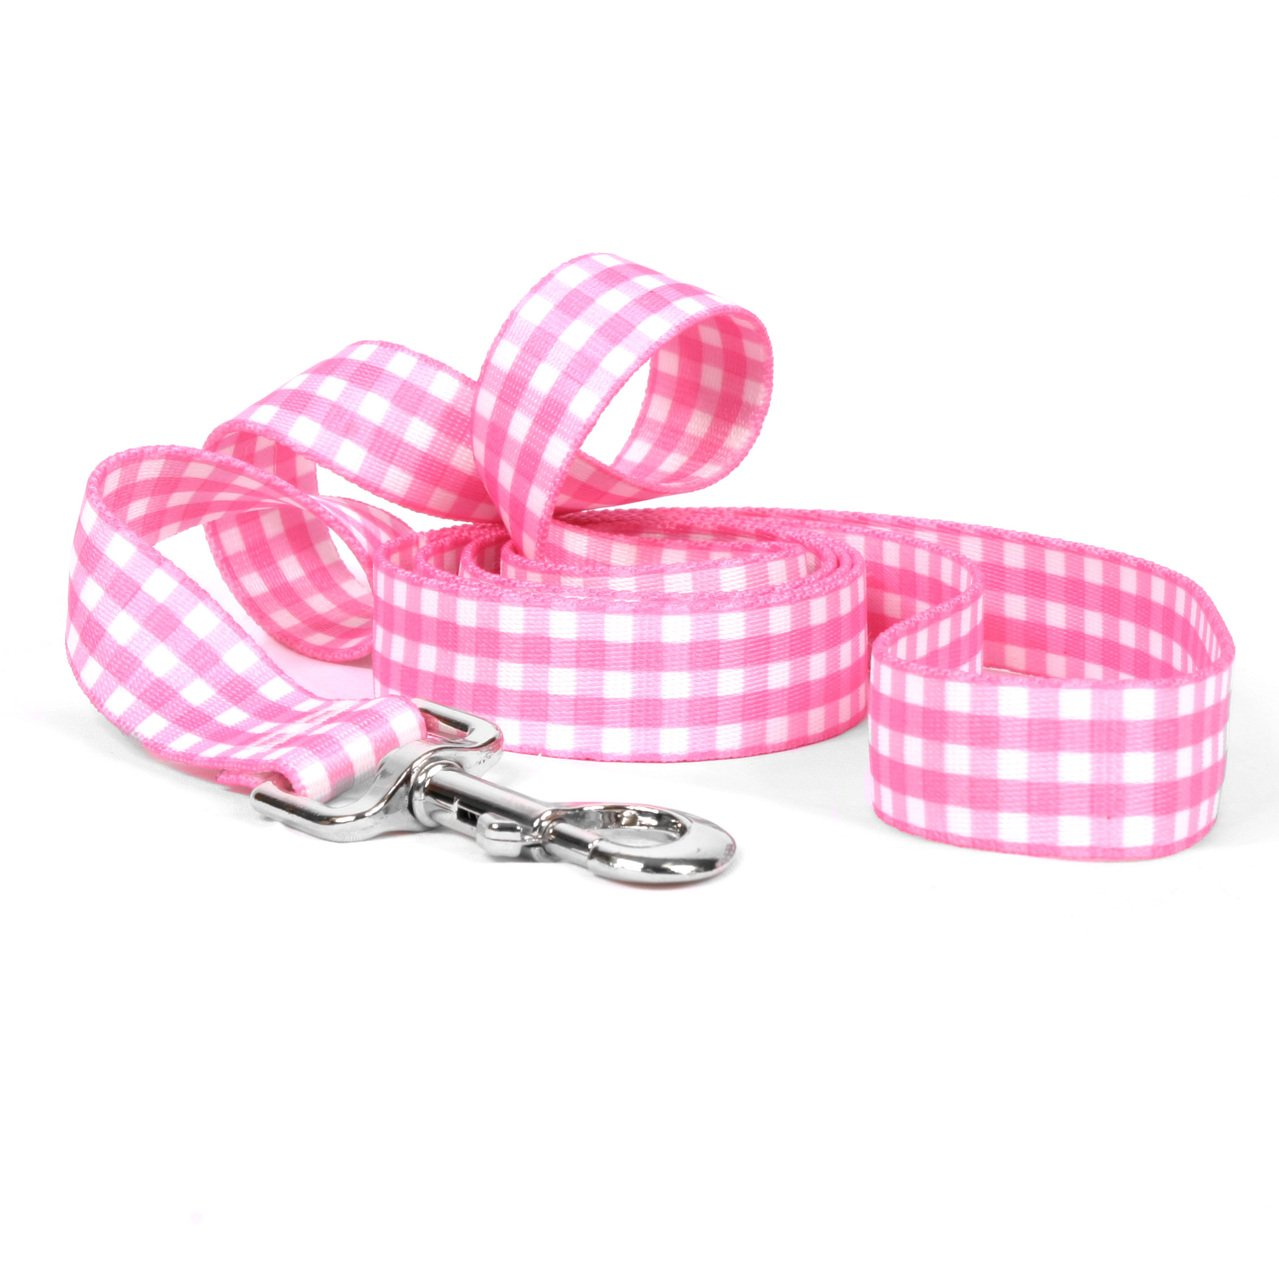 Yellow Dog Design Gingham Pink Dog Leash 1'' Wide and 5' (60'') Long, Large